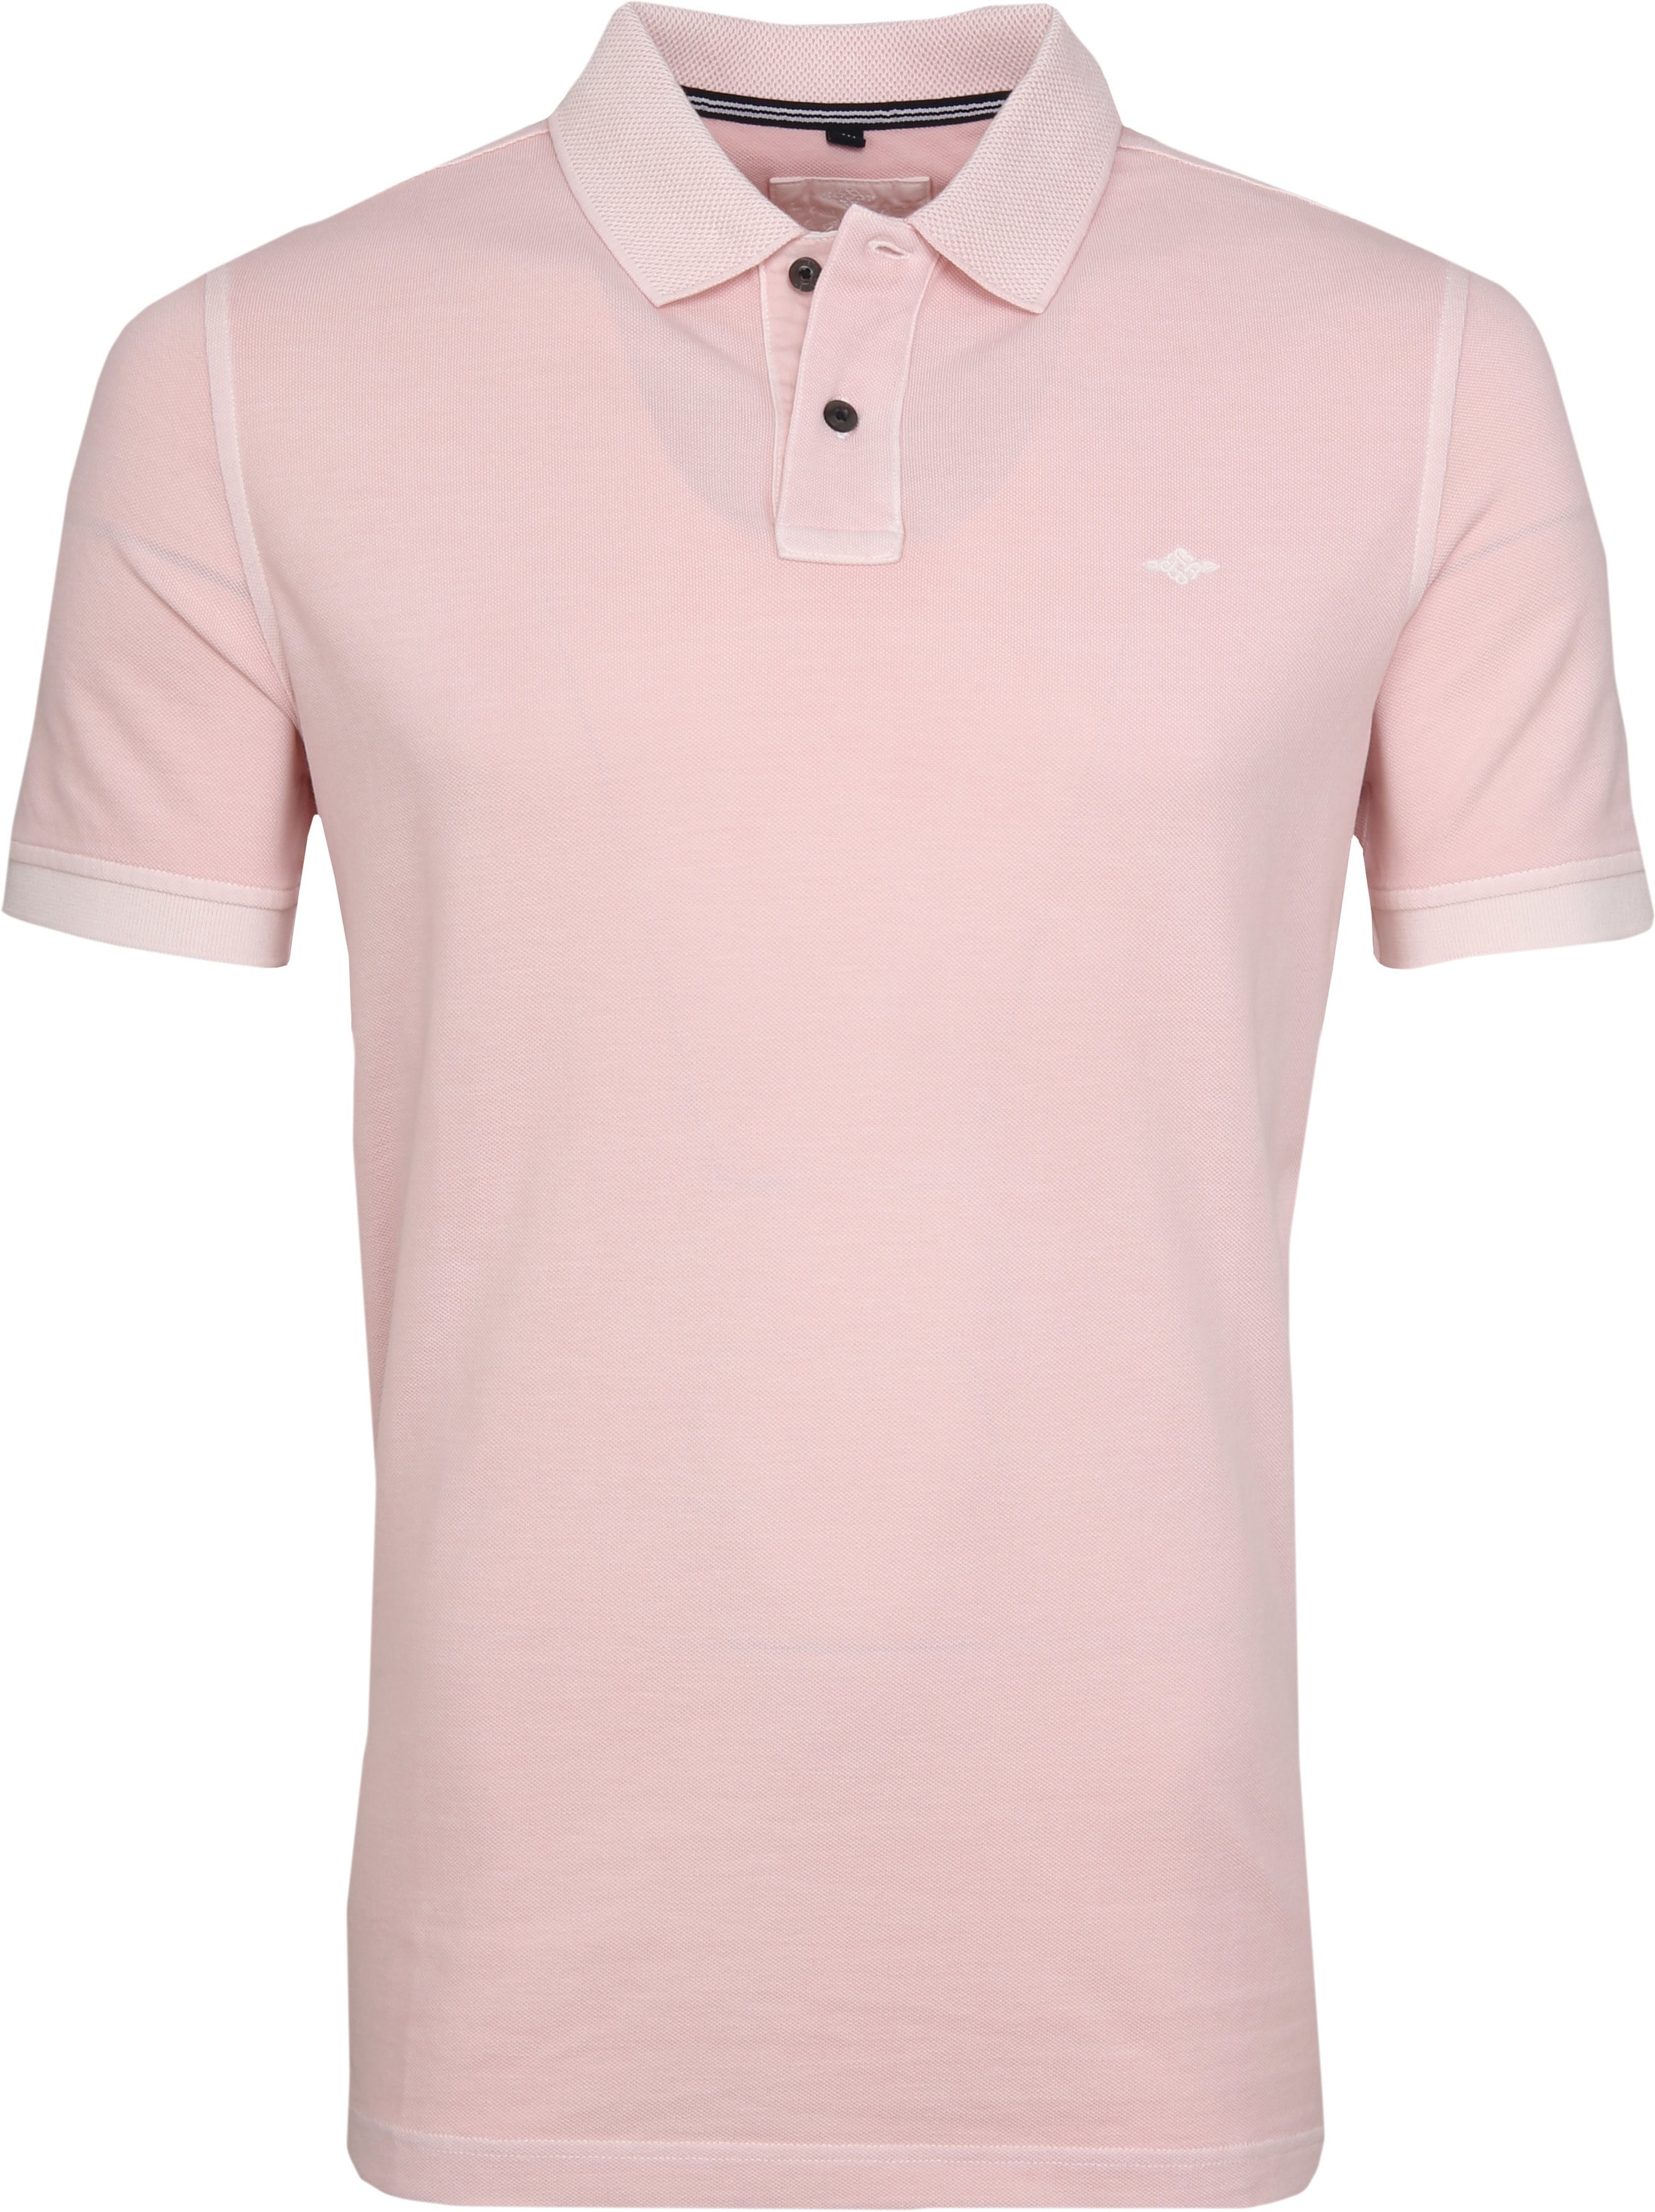 Suitable Poloshirt Boston Pink foto 0